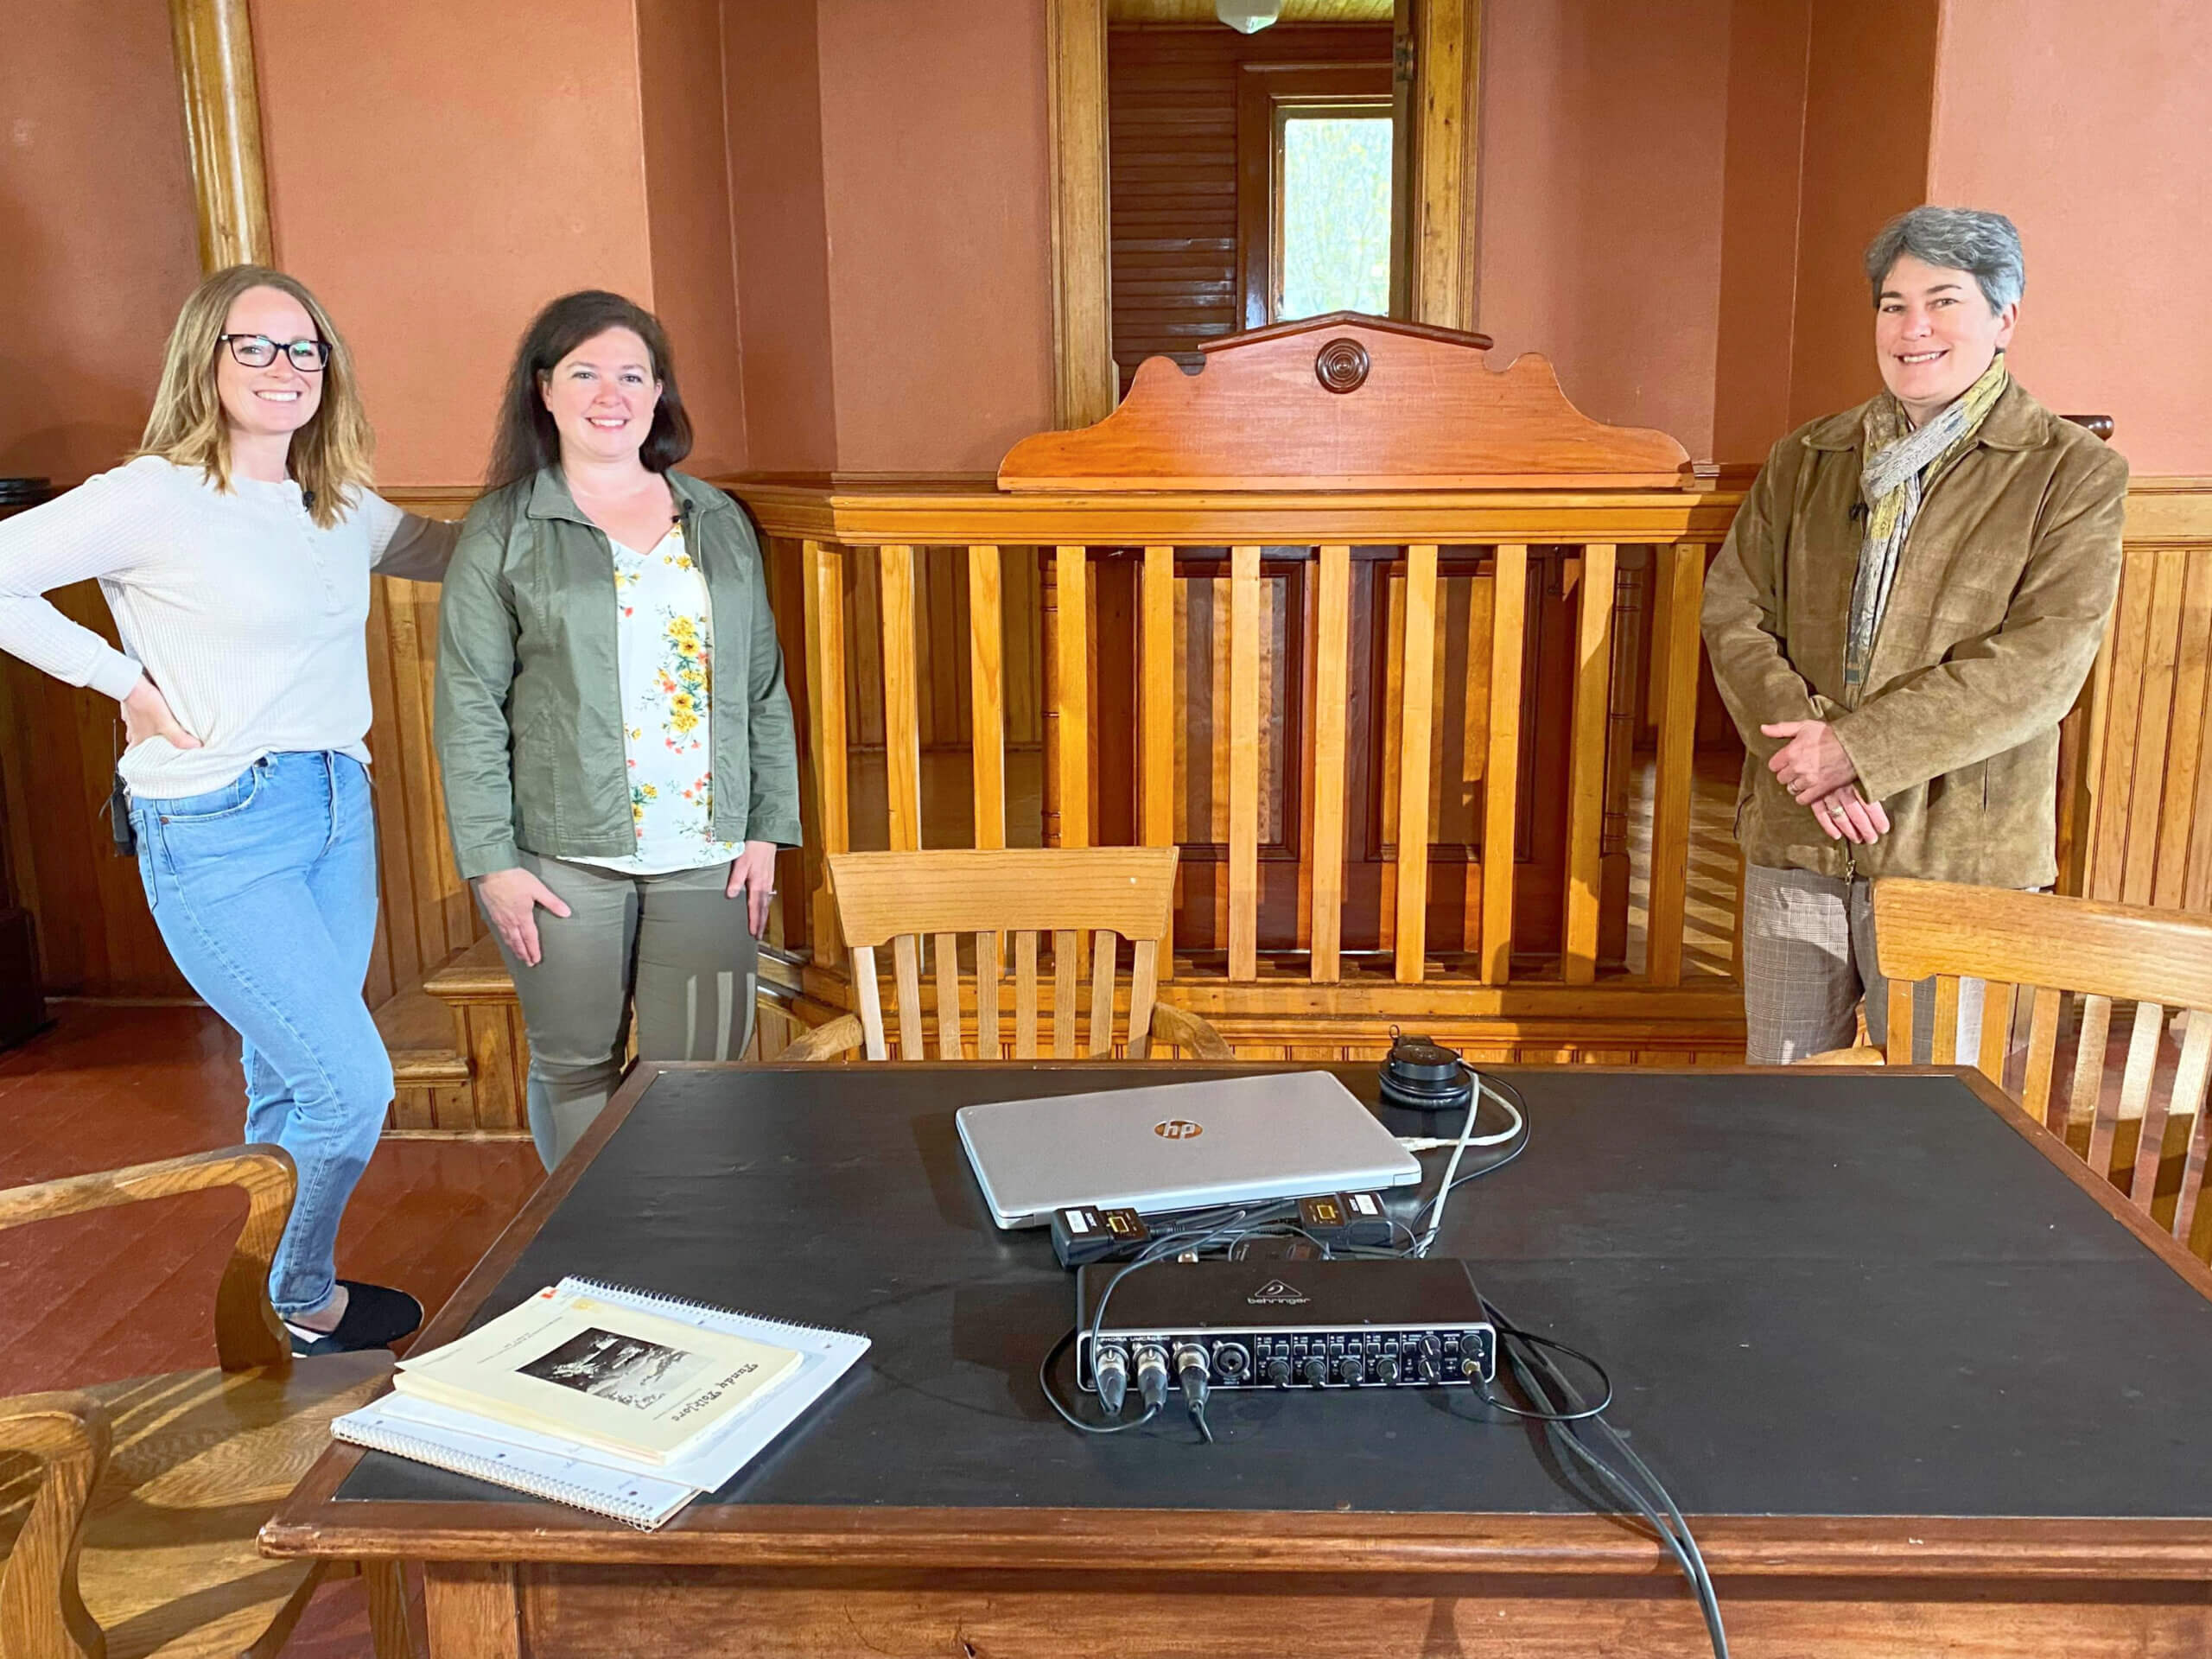 pickle planet podcast inside albert county museum court house built by watson reid